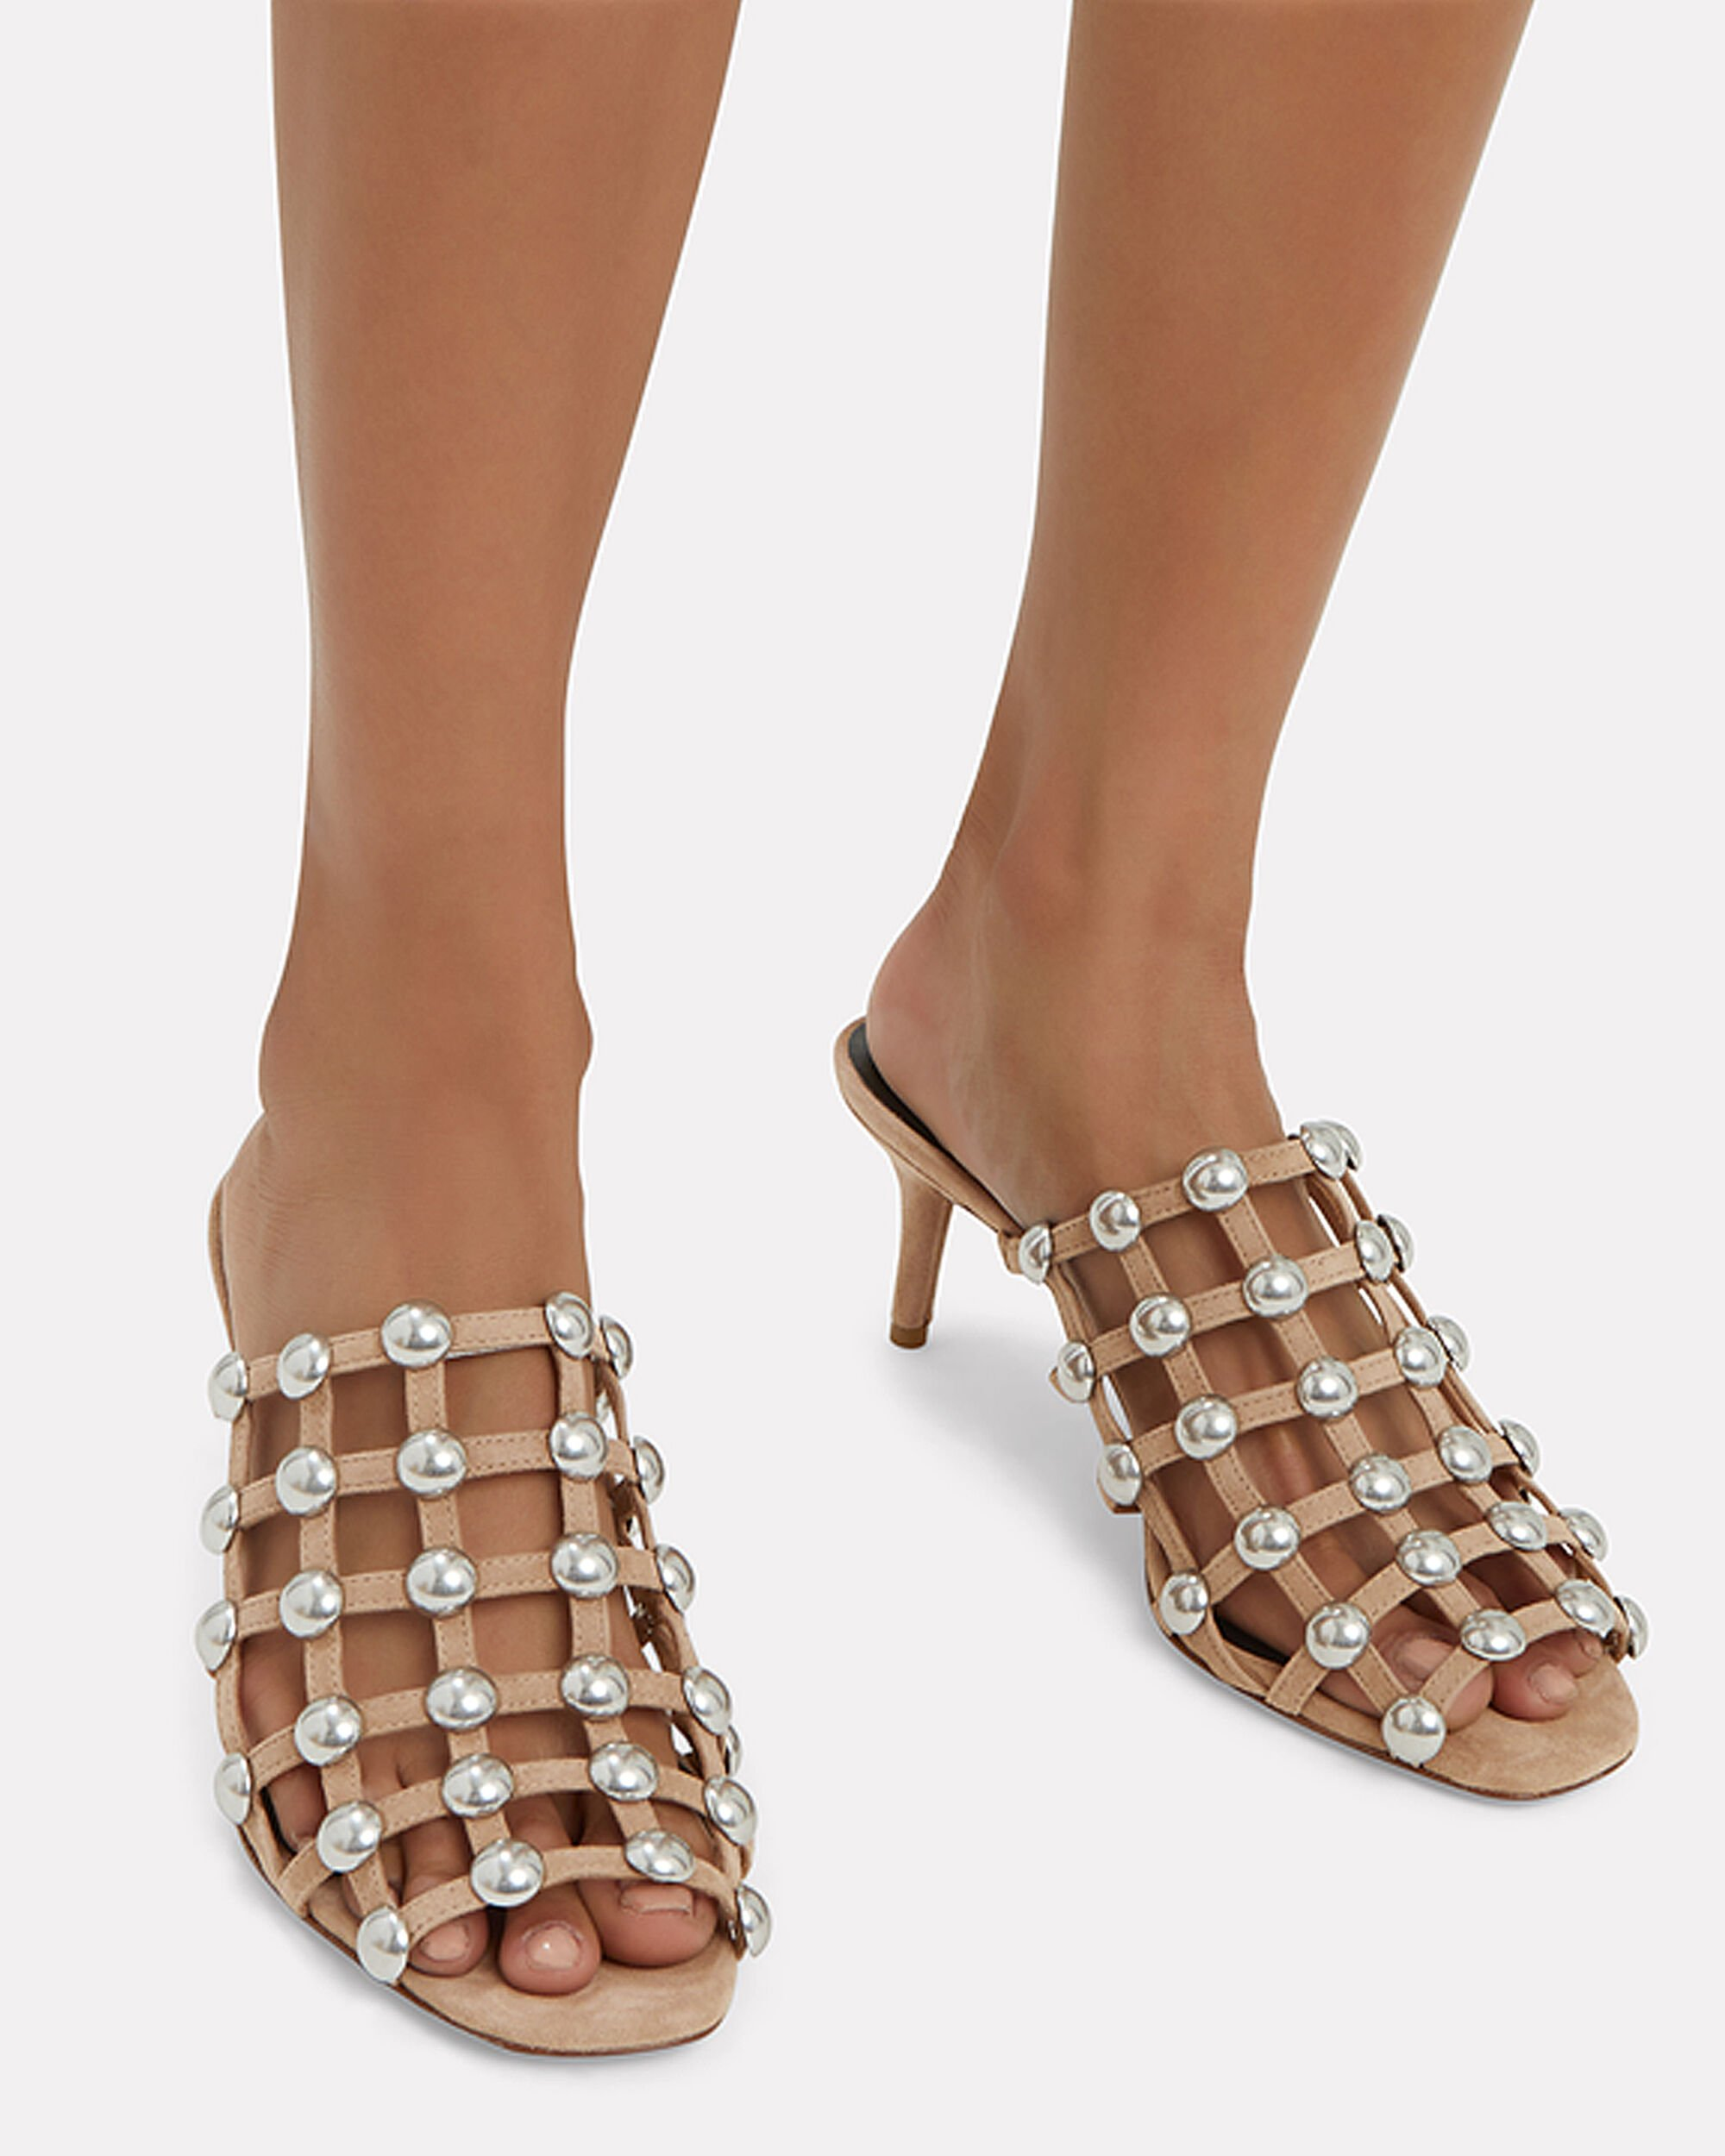 Sofia Low Heel Cage Sandals, BEIGE, hi-res